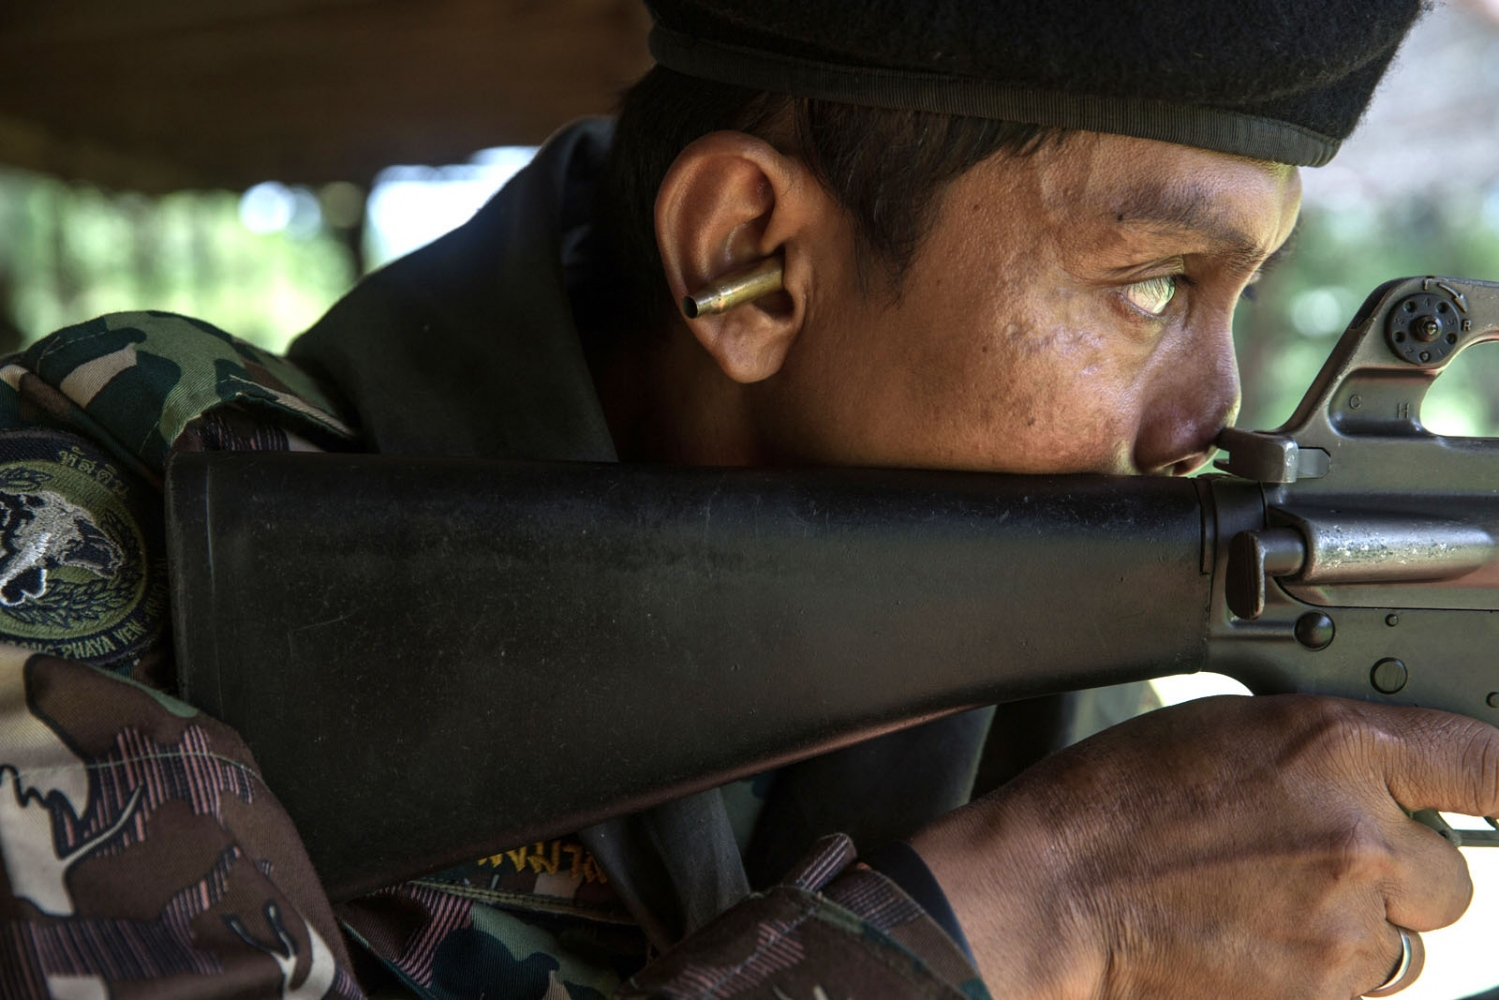 A veteran ranger called Khom undertakes shooting practice at a nearby army base using the spent shell as ear-plugs. Ta Praya National Park, Sa Kaew Province - September 2018